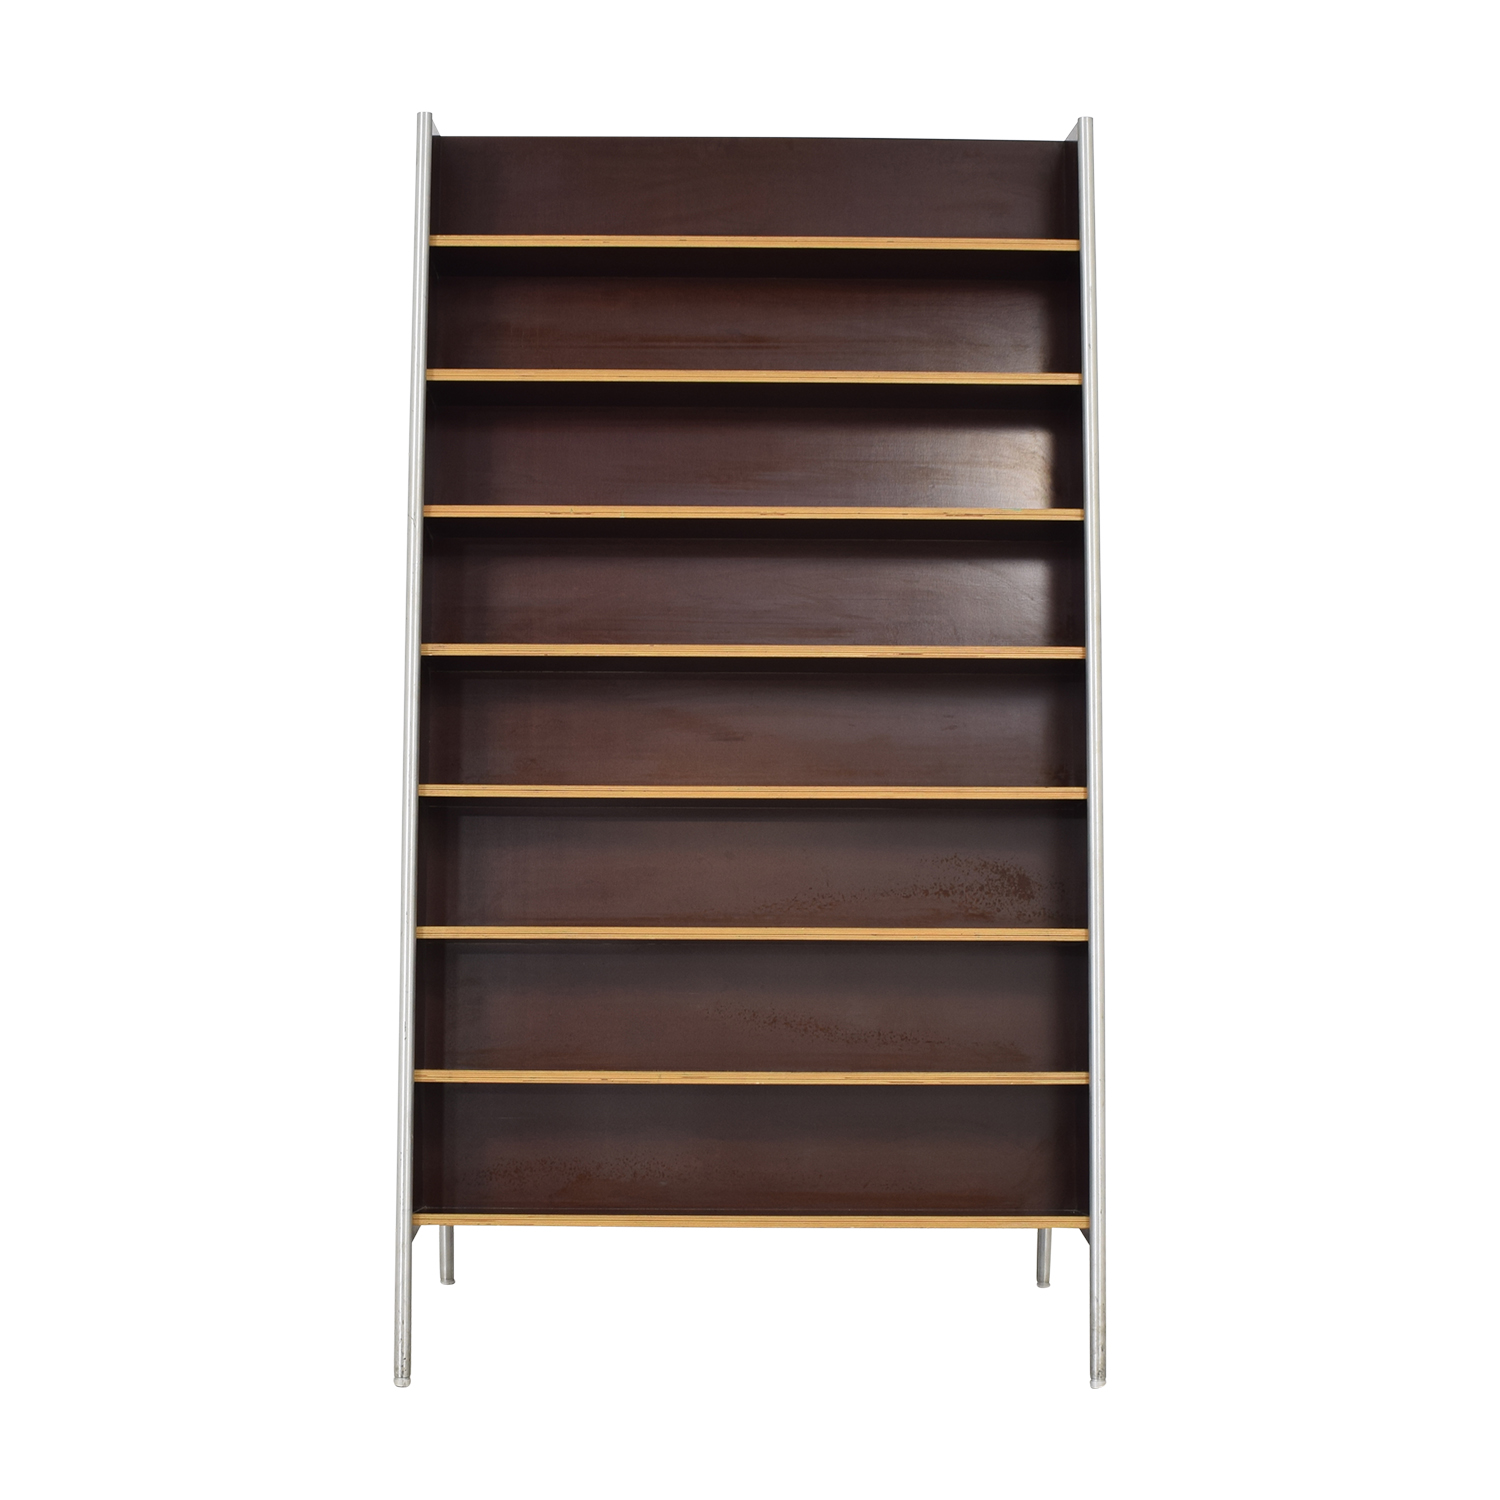 Custom Metal and Wood Bookcase / Storage